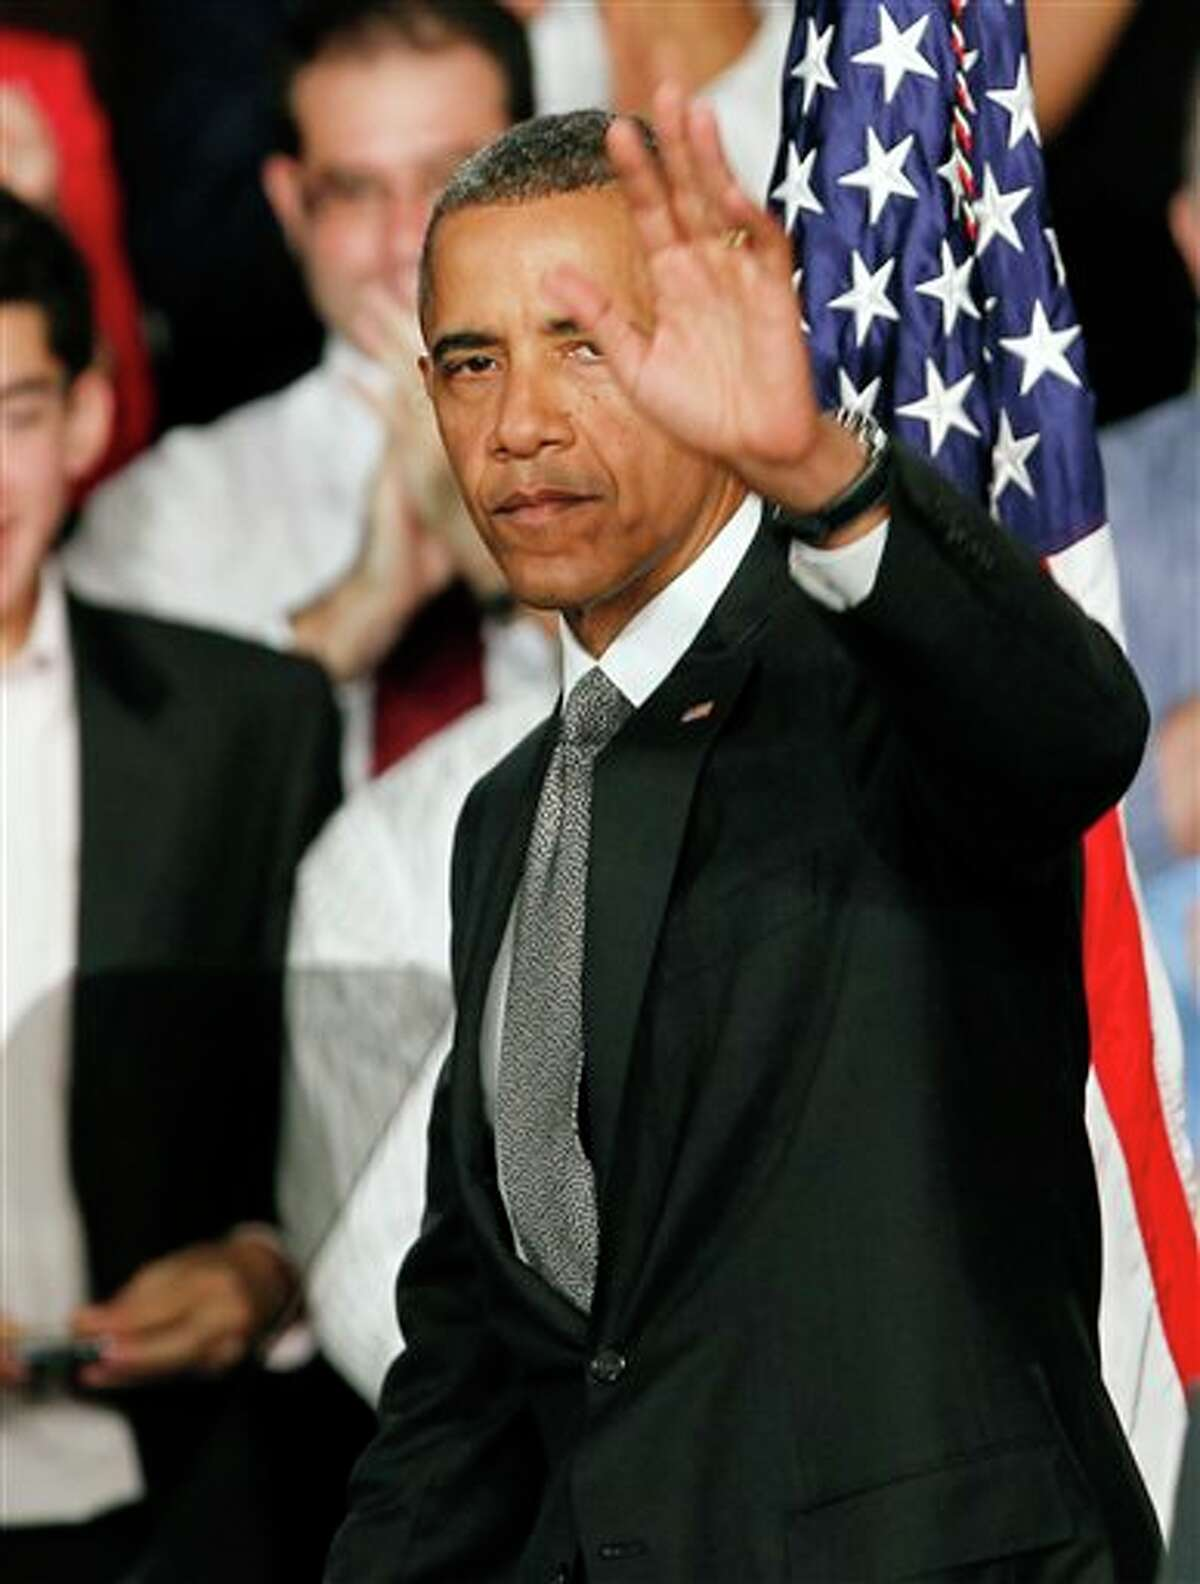 """President Barack Obama waves to supporters after talking about the events in Aurora, Colo., during a campaign stop in Fort Myers, Fla., Friday, July 19, 2012. Obama said the tragic movie theater shooting in Colorado that left 12 people dead is a reminder that life is fragile. He says the event """"reminds us of all the ways that we are united as one American family."""""""